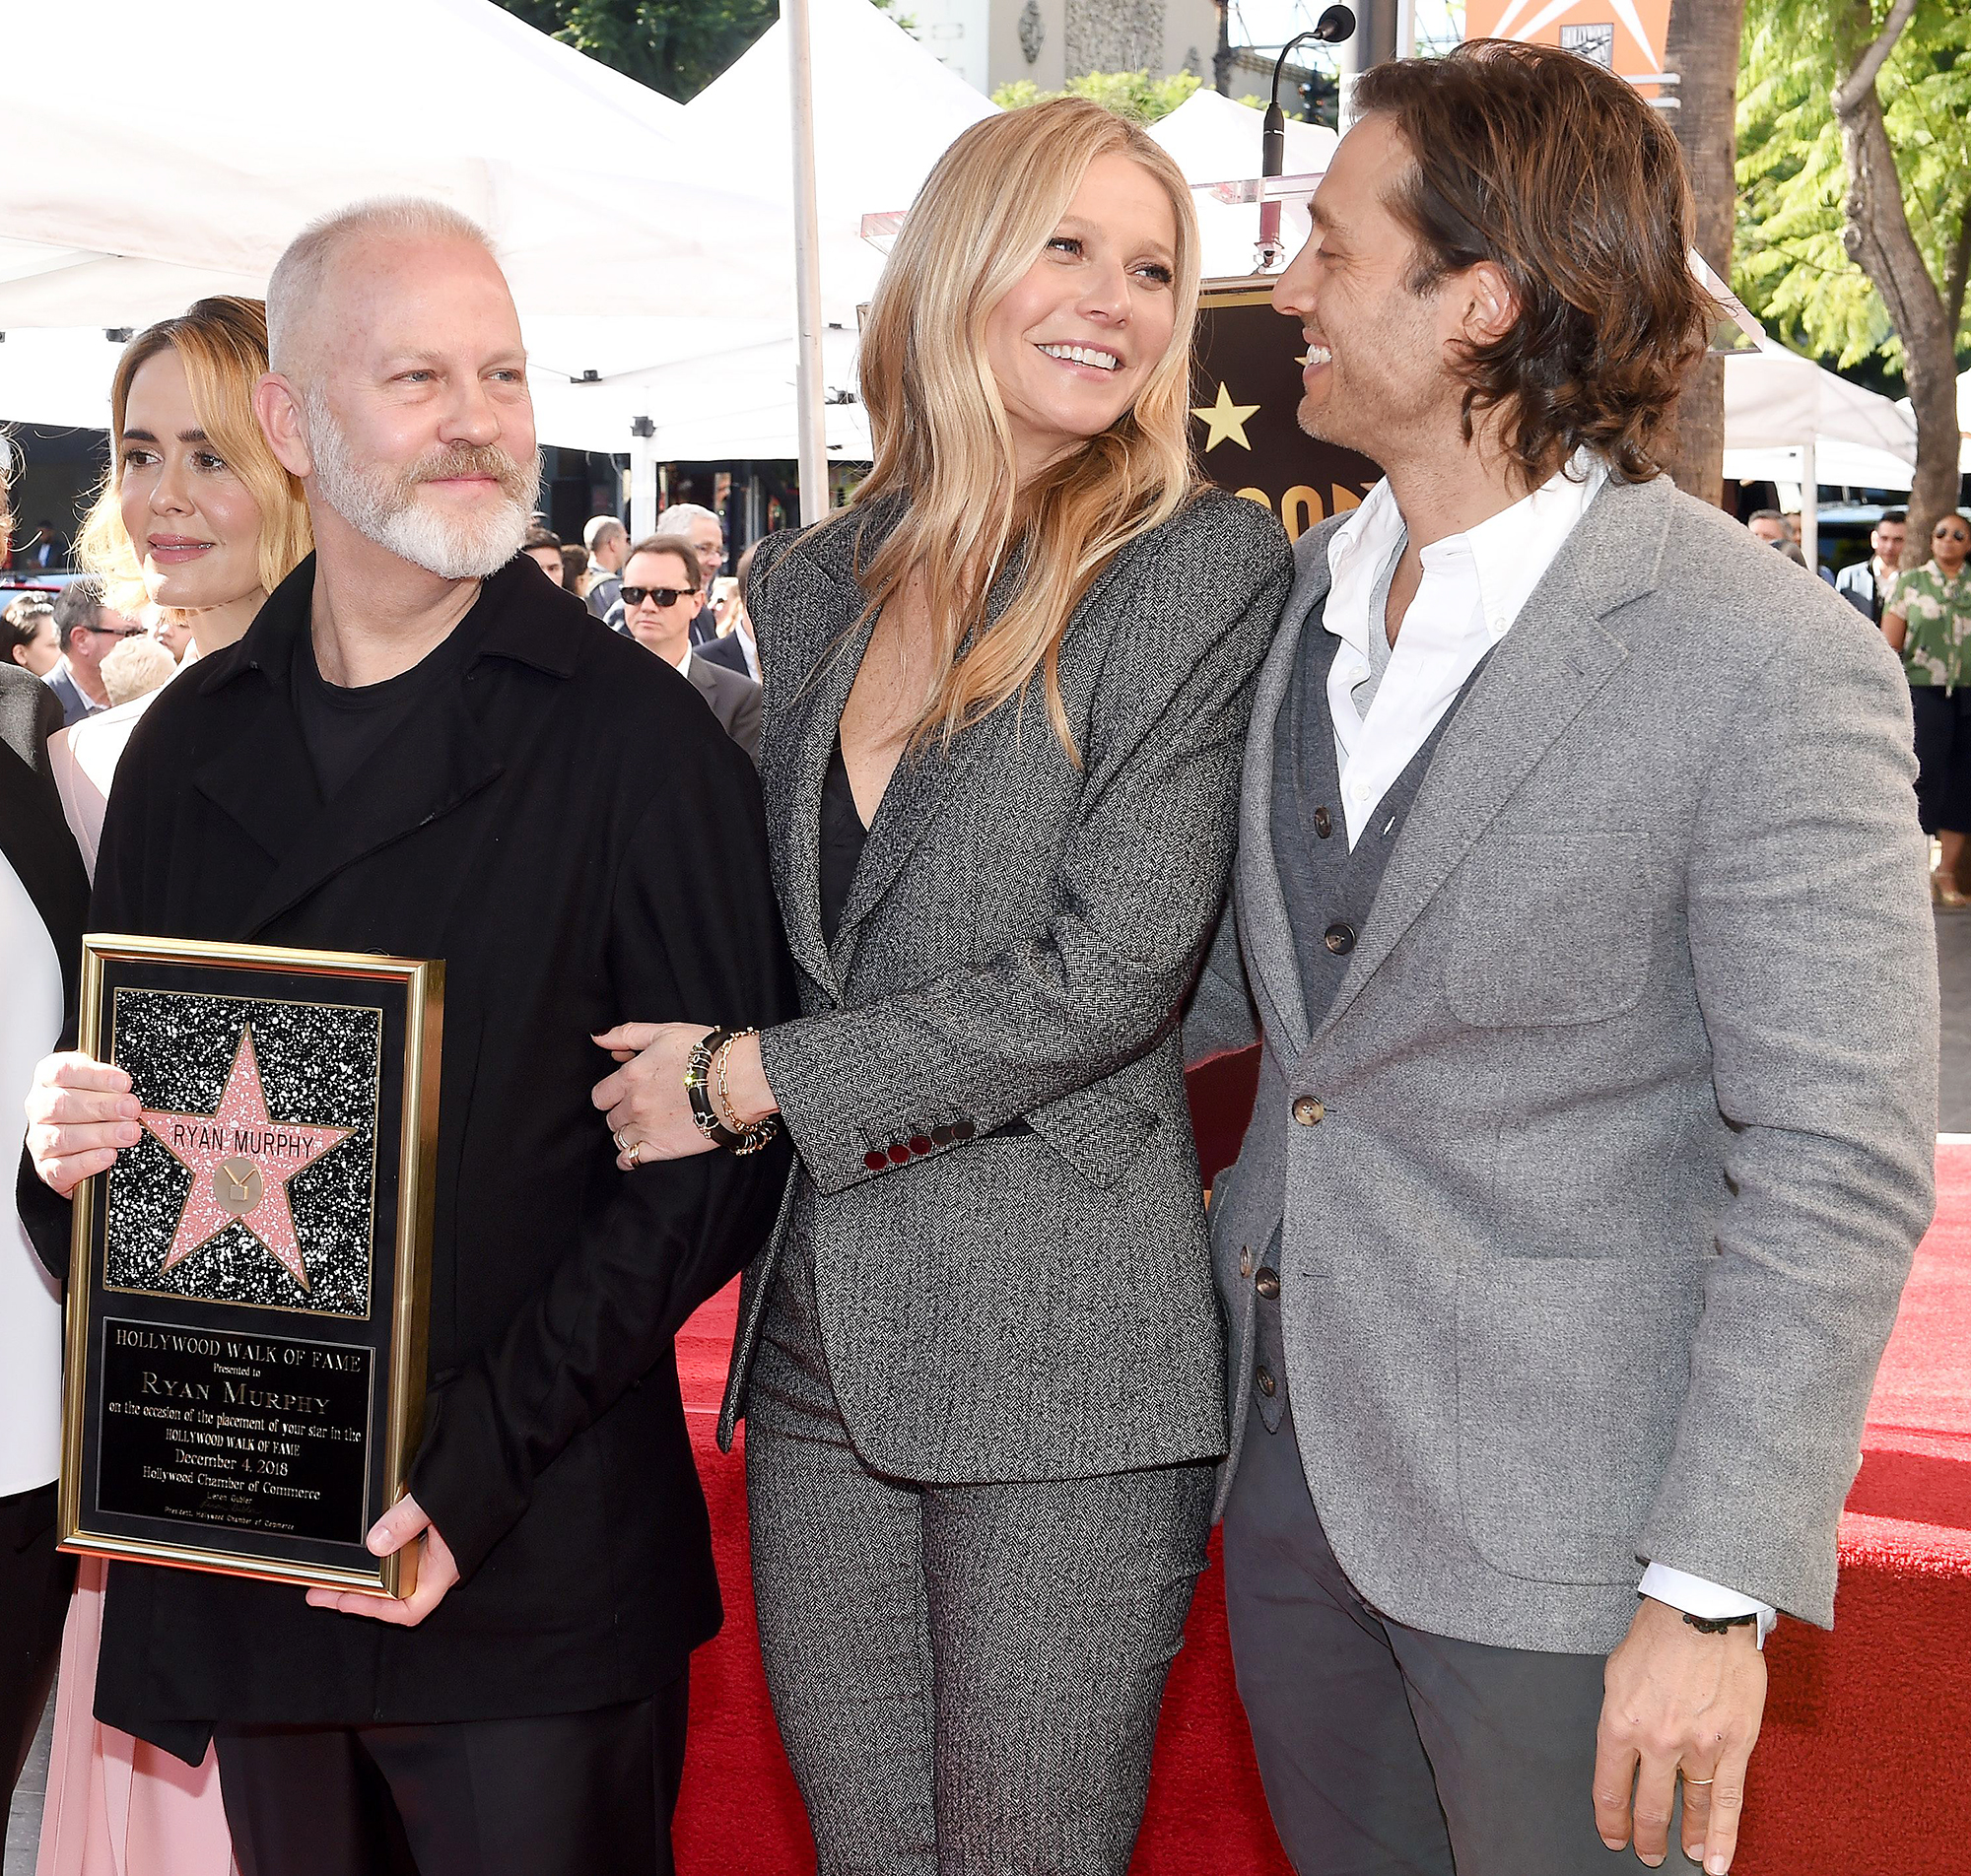 Gwyneth Paltrow Brad Falchuk Praise Ryan Murphy For Introducing Them - Ryan Murphy honored with star on the Hollywood Walk of Fame. Hollywood, California.